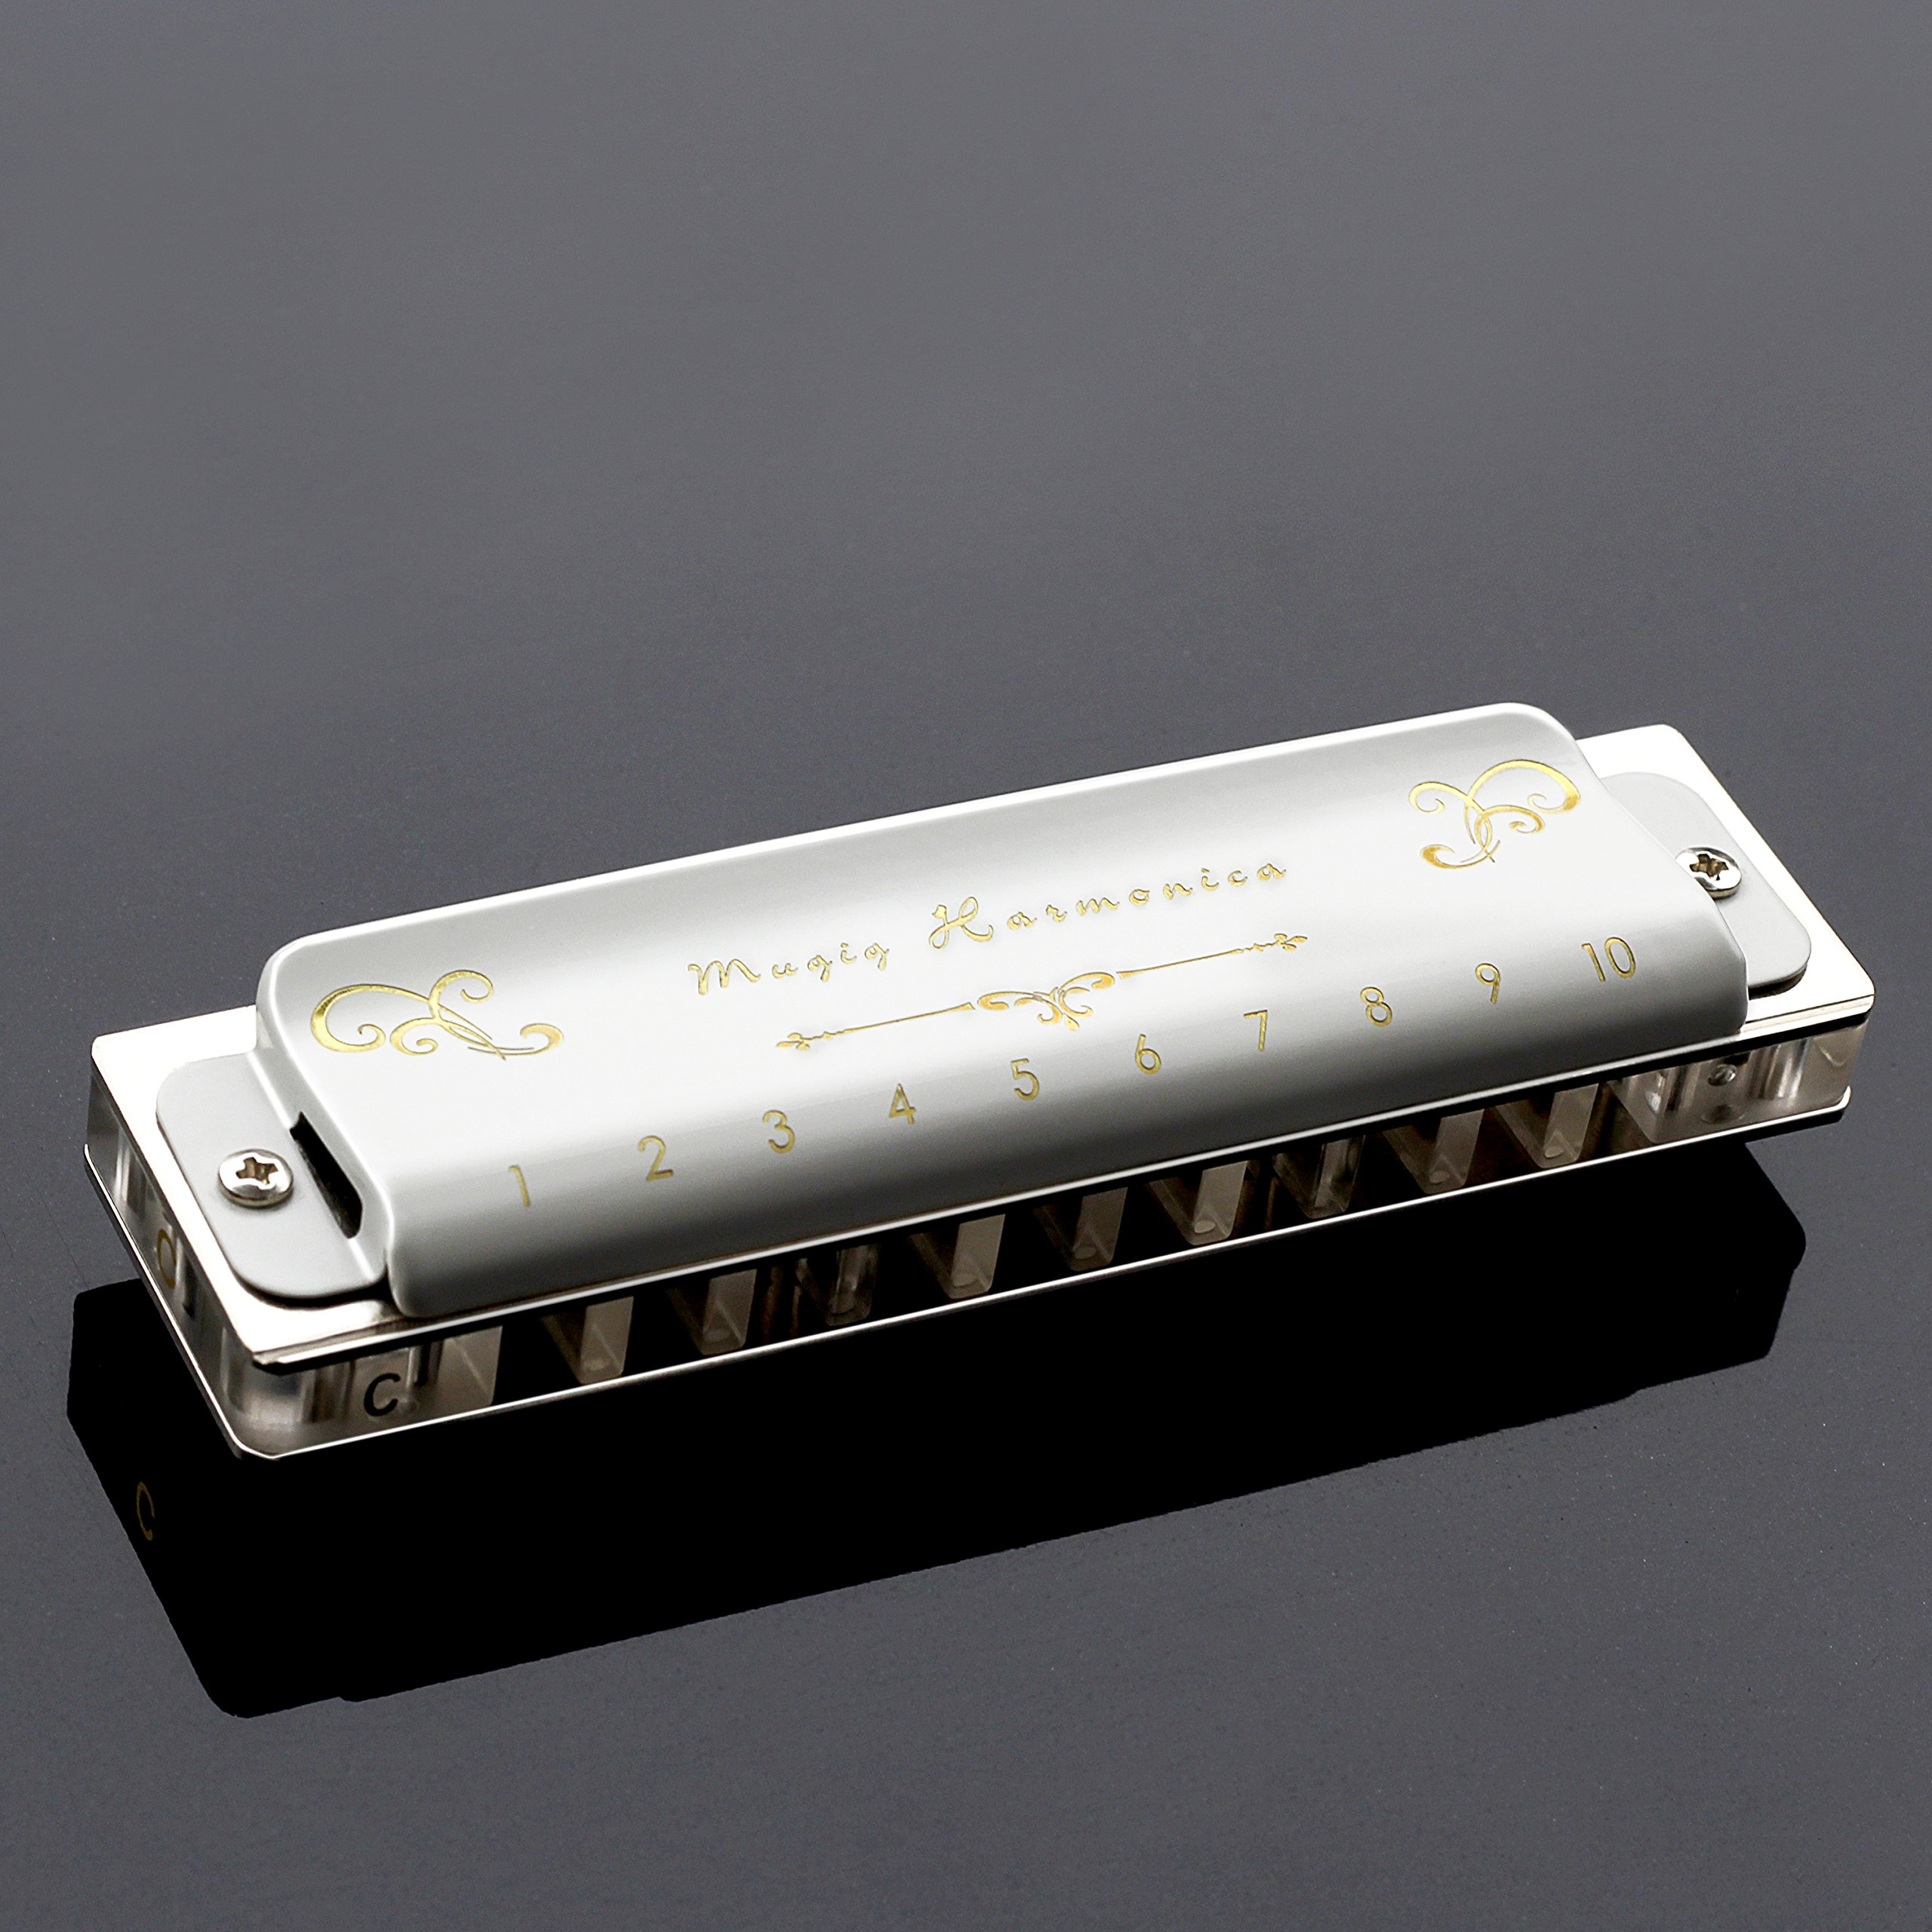 Mugig Harmonica 10 Hole Professional Blues Harmonica White, Key of C, 20 Tones